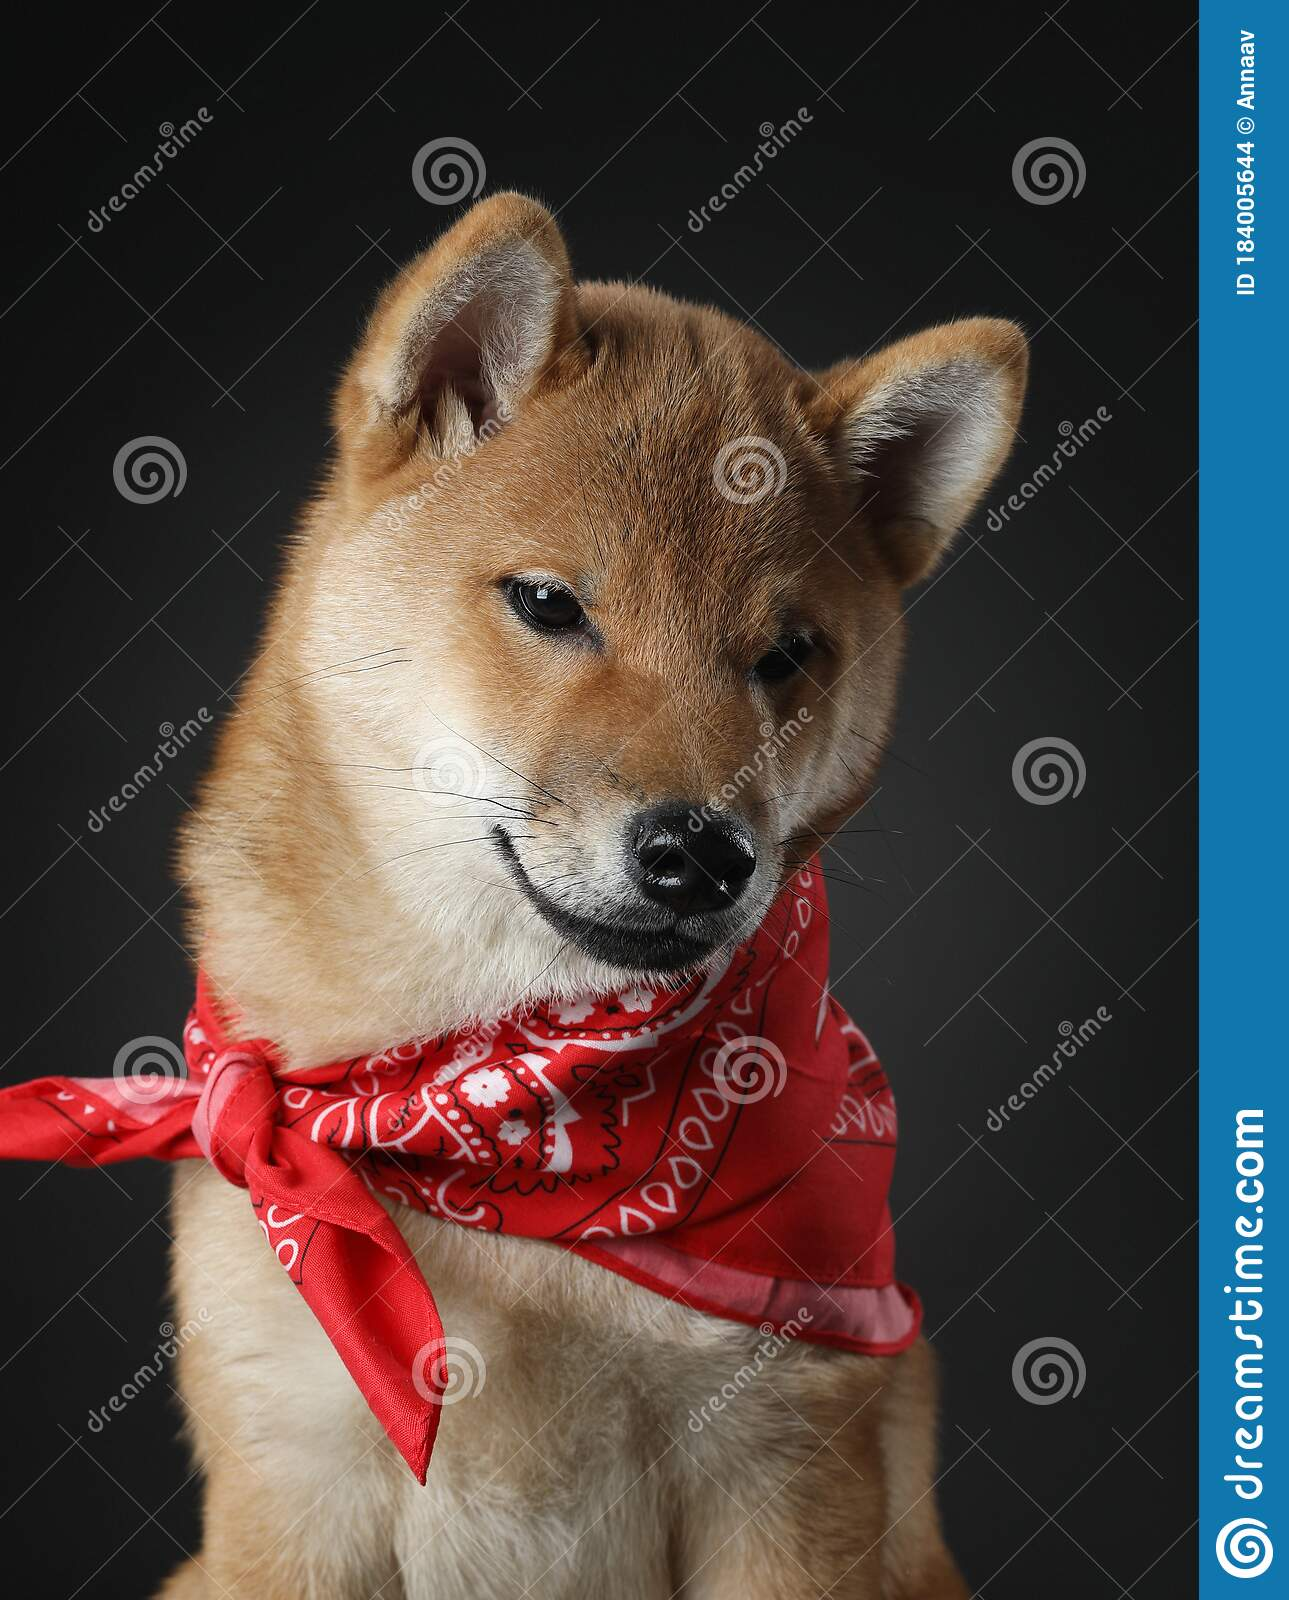 Shiba Inu Puppy Dog On A Black Background Pet In The Studio Stock Photo Image Of Baby Japan 184005644